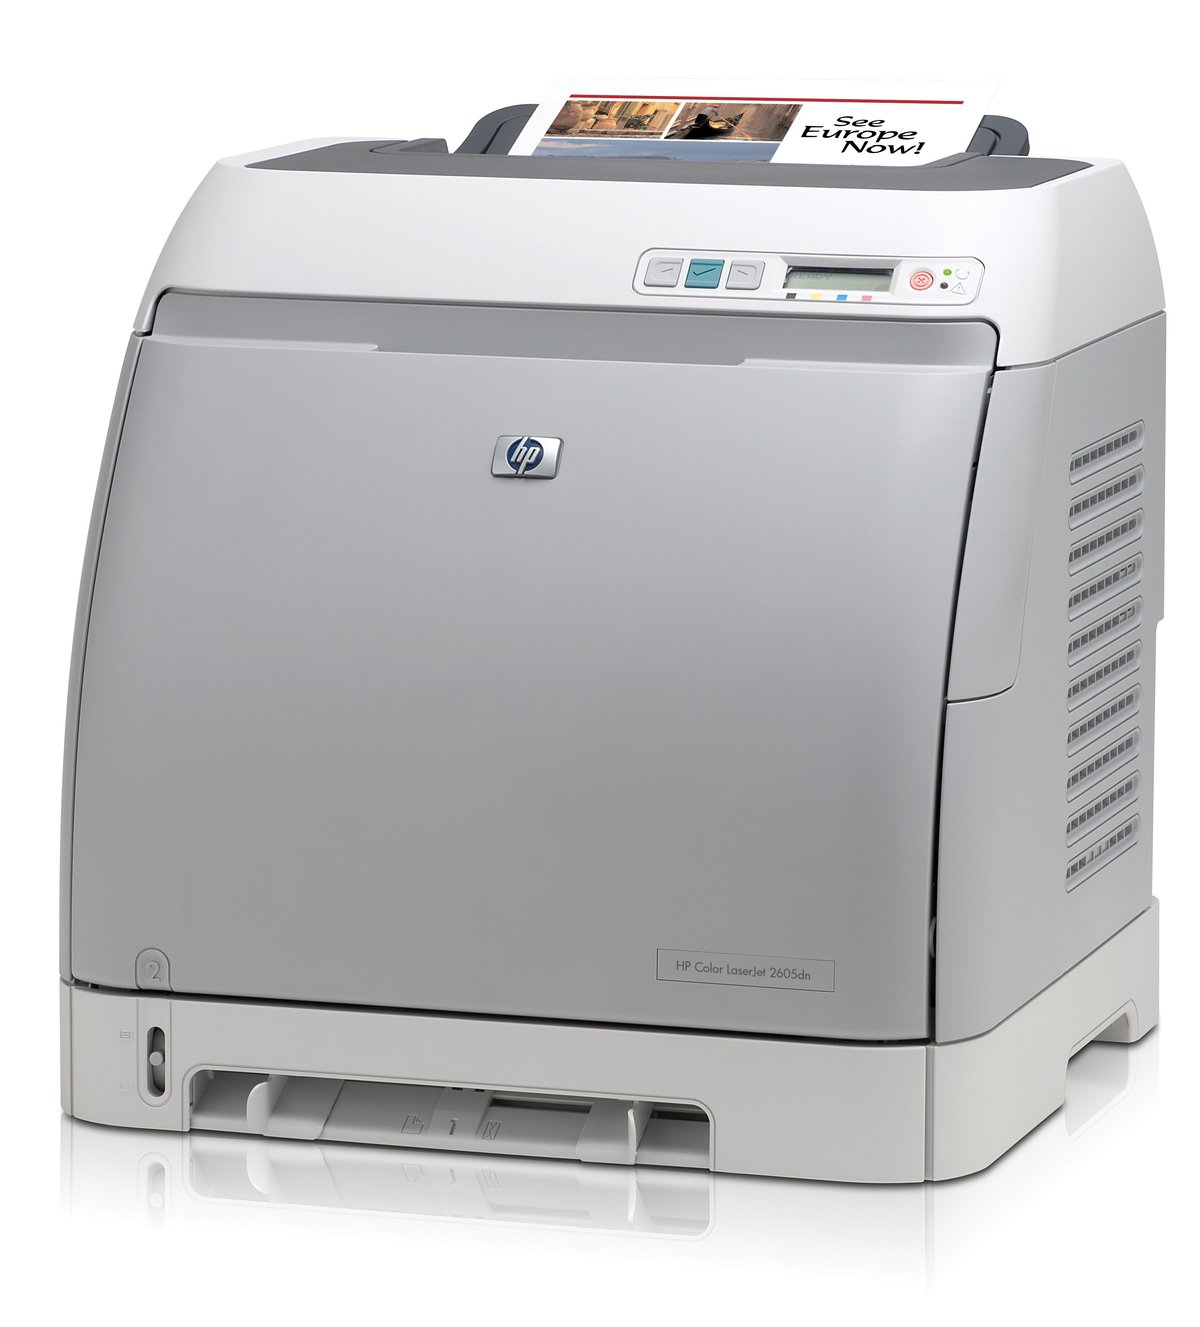 HP LaserJet 2605dn Color Laser Printer - Network, Duplex Printing, Up To  2400 dpi, Up To 12 ppm Black/10 ppm Color (Open Box) at TigerDirect.com